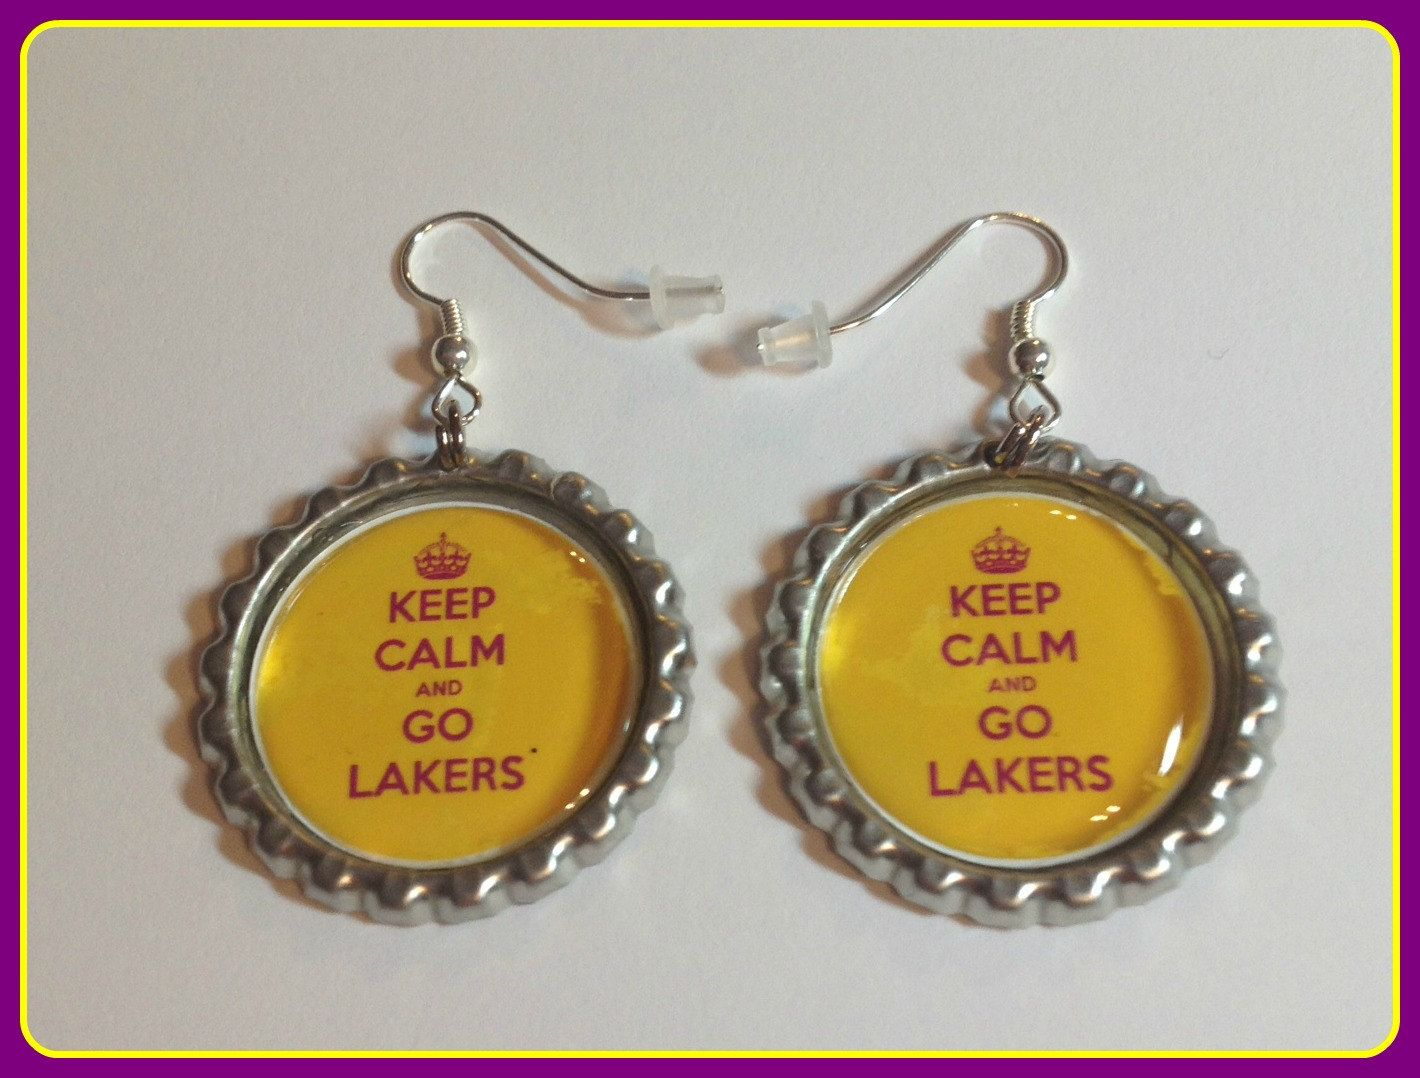 LA Lakers Earrings Keep Calm Lakers Custom Made Sports & Themed Jewelry nba nfl ncaa mlb nhl nba nsl Earring,Keychain,Charm Bracelet by SportsnBabyCouture on Etsy